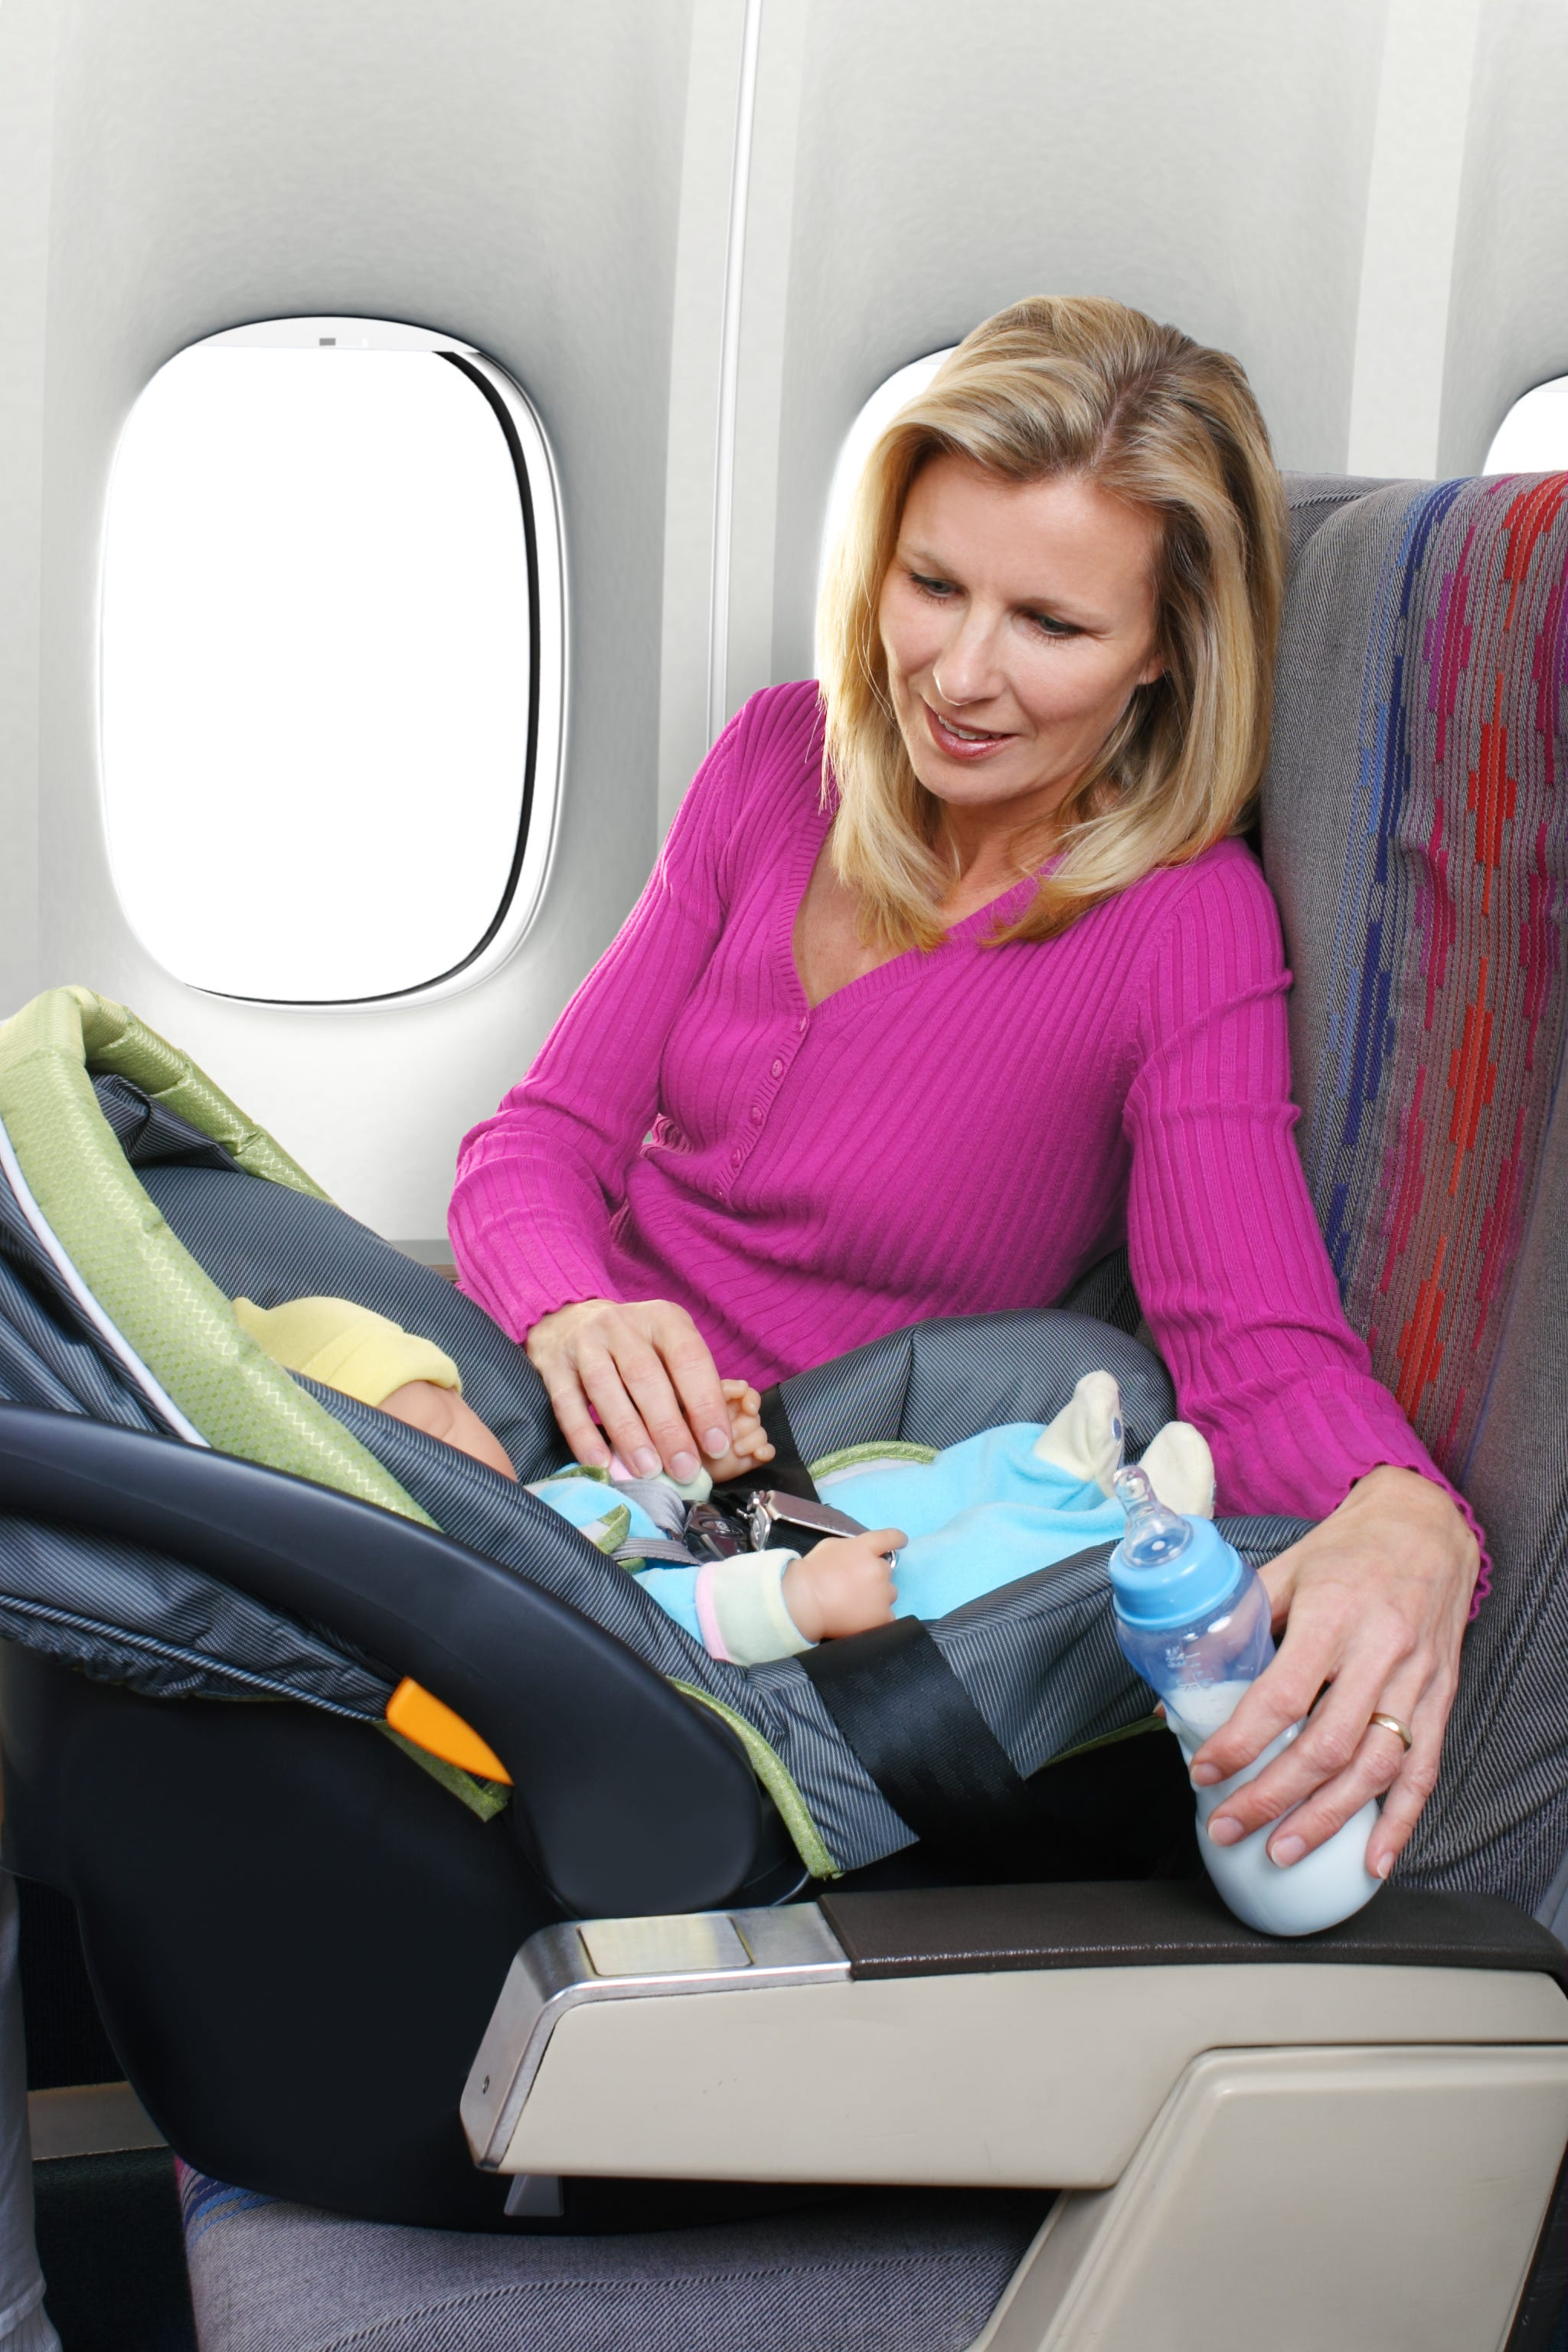 Should you buy  your baby a separate seat when flying? Yes, and here's why.